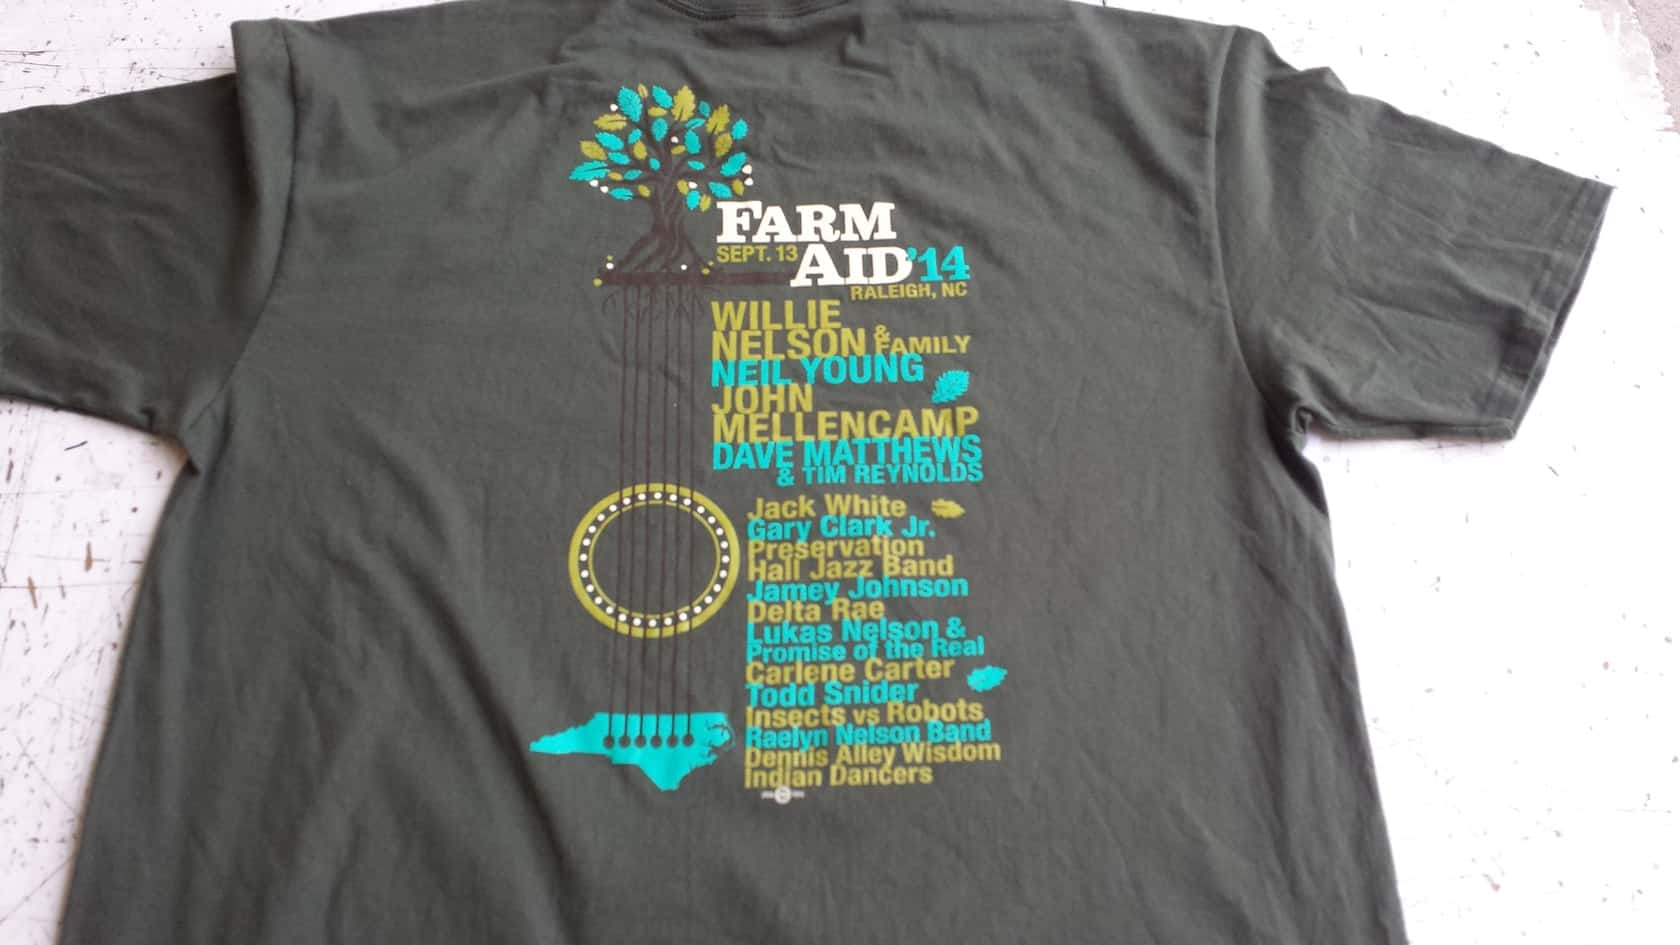 Shirt design of 2014 - The Shirt Of The 2014 Farm Aid Logo Shirt Uses The Same Elements As The Poster